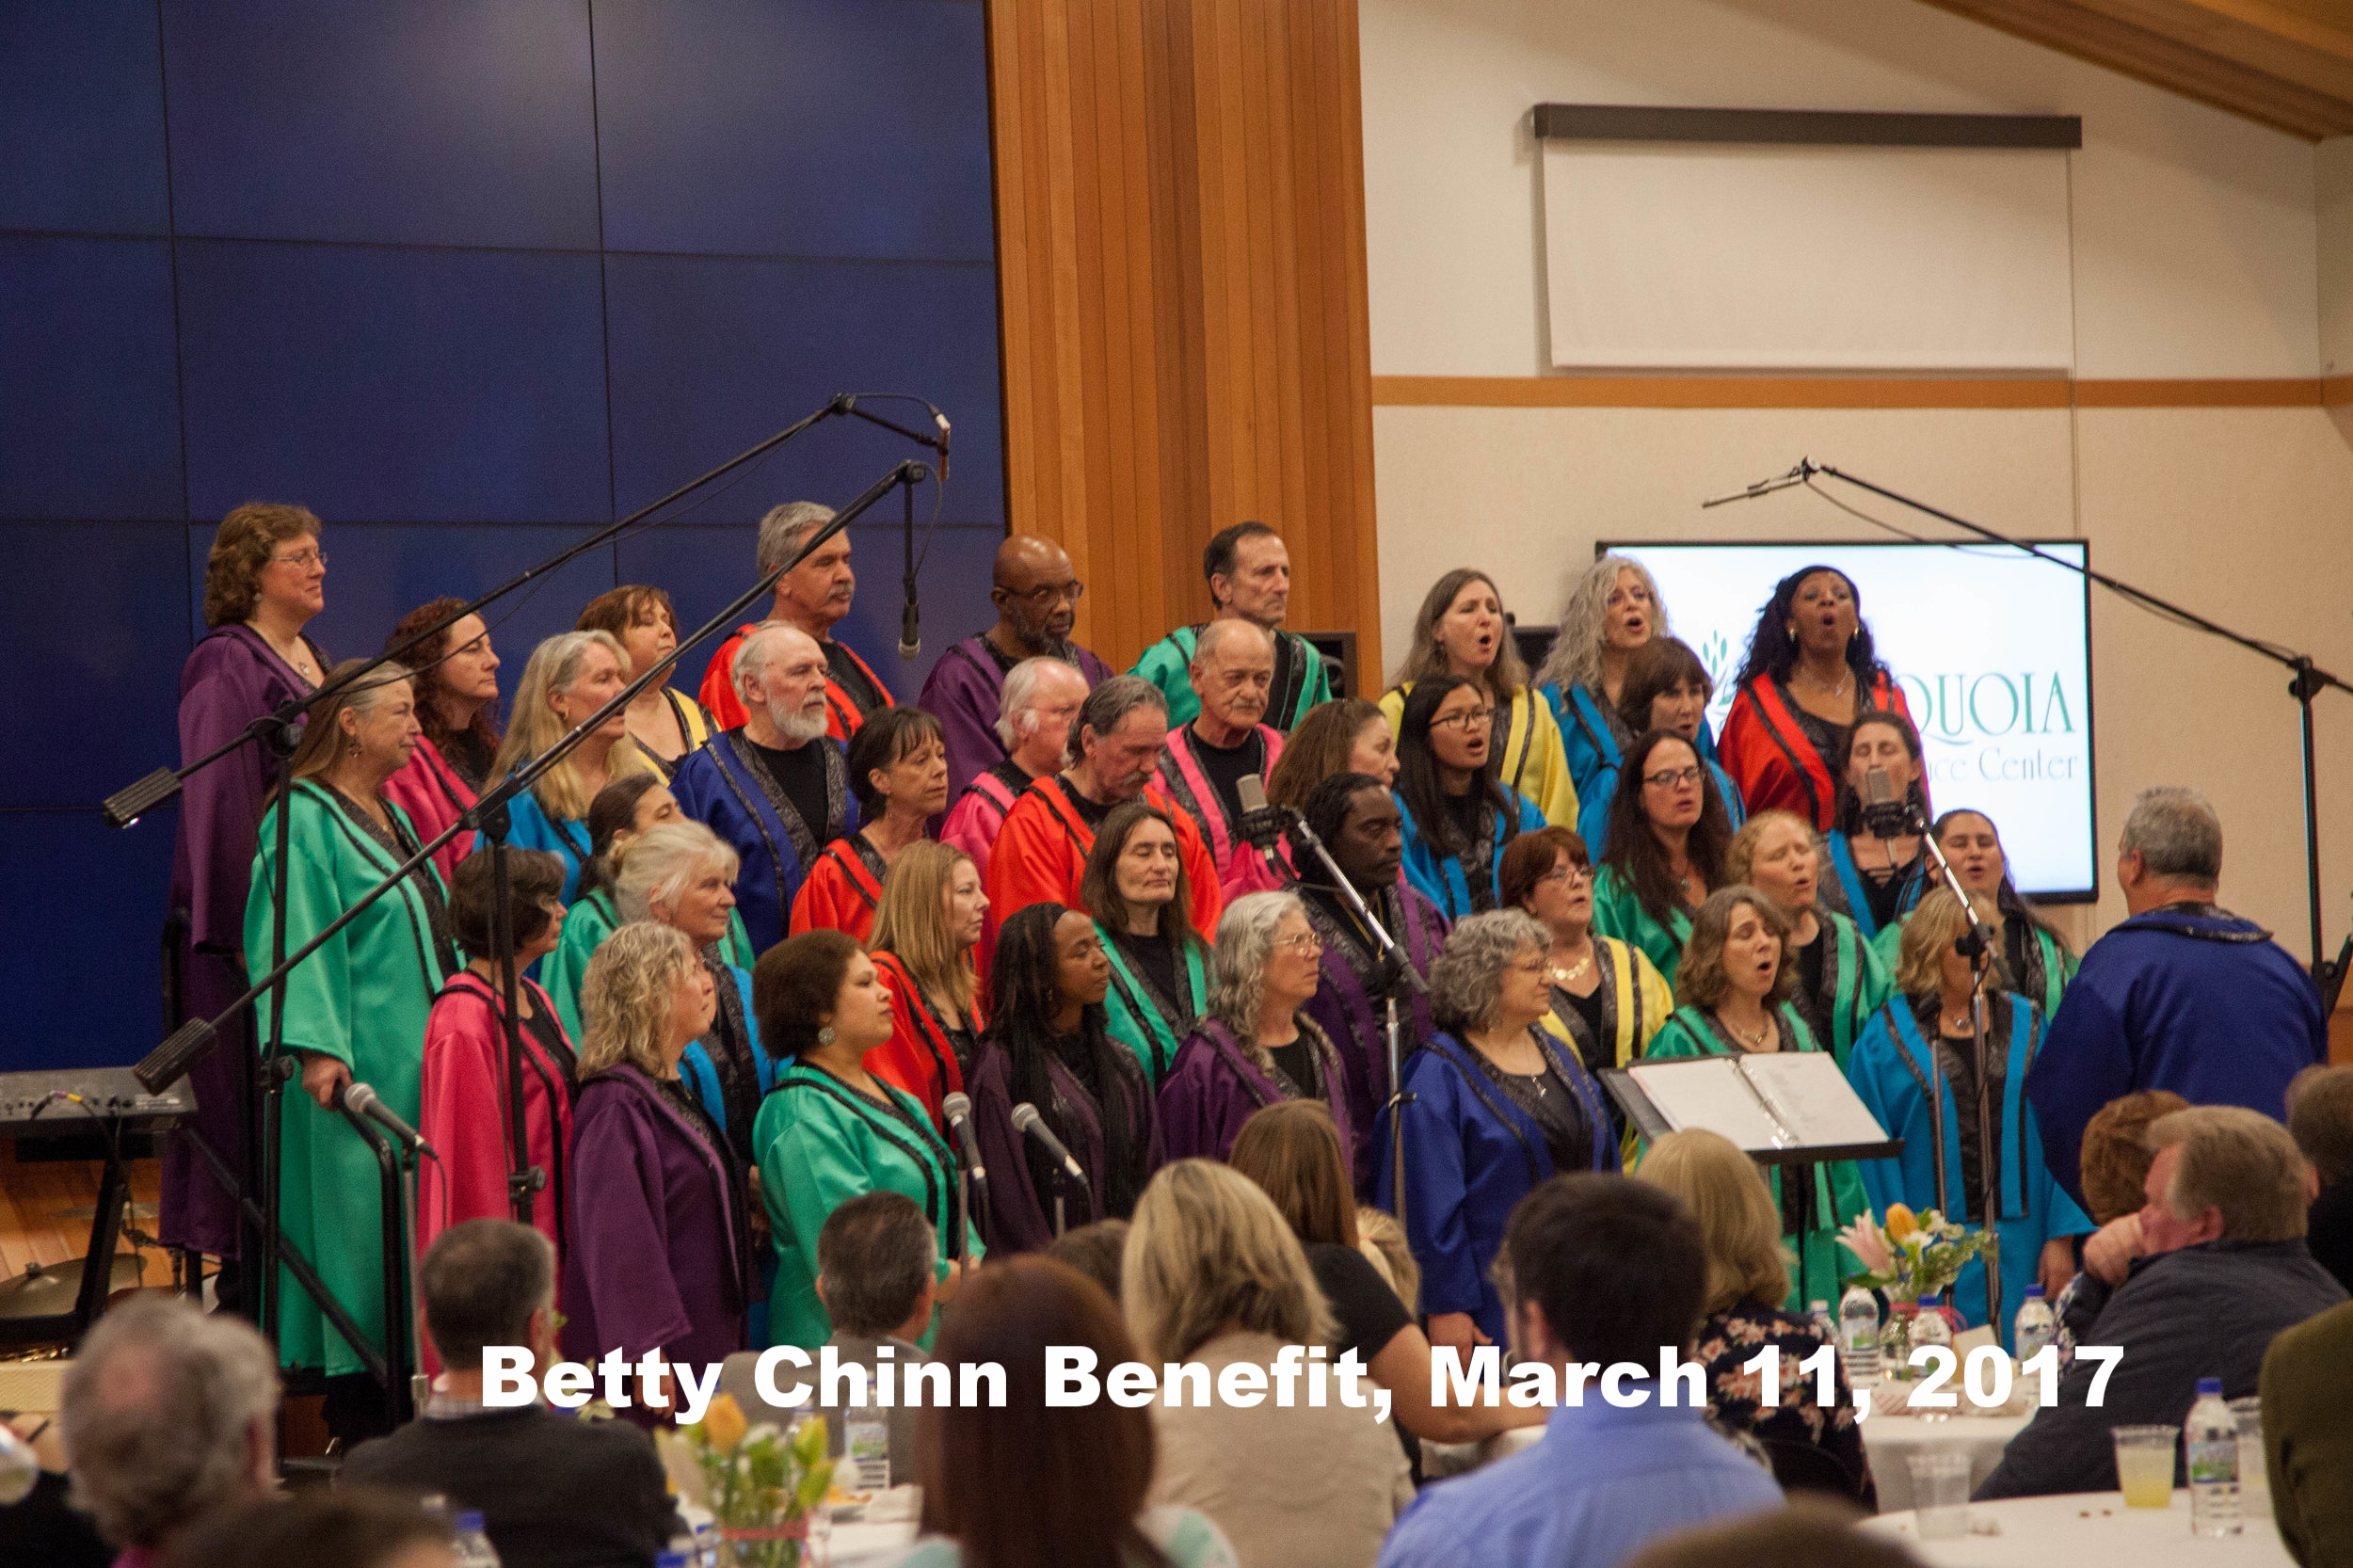 Betty Chinn Benefit.jpg